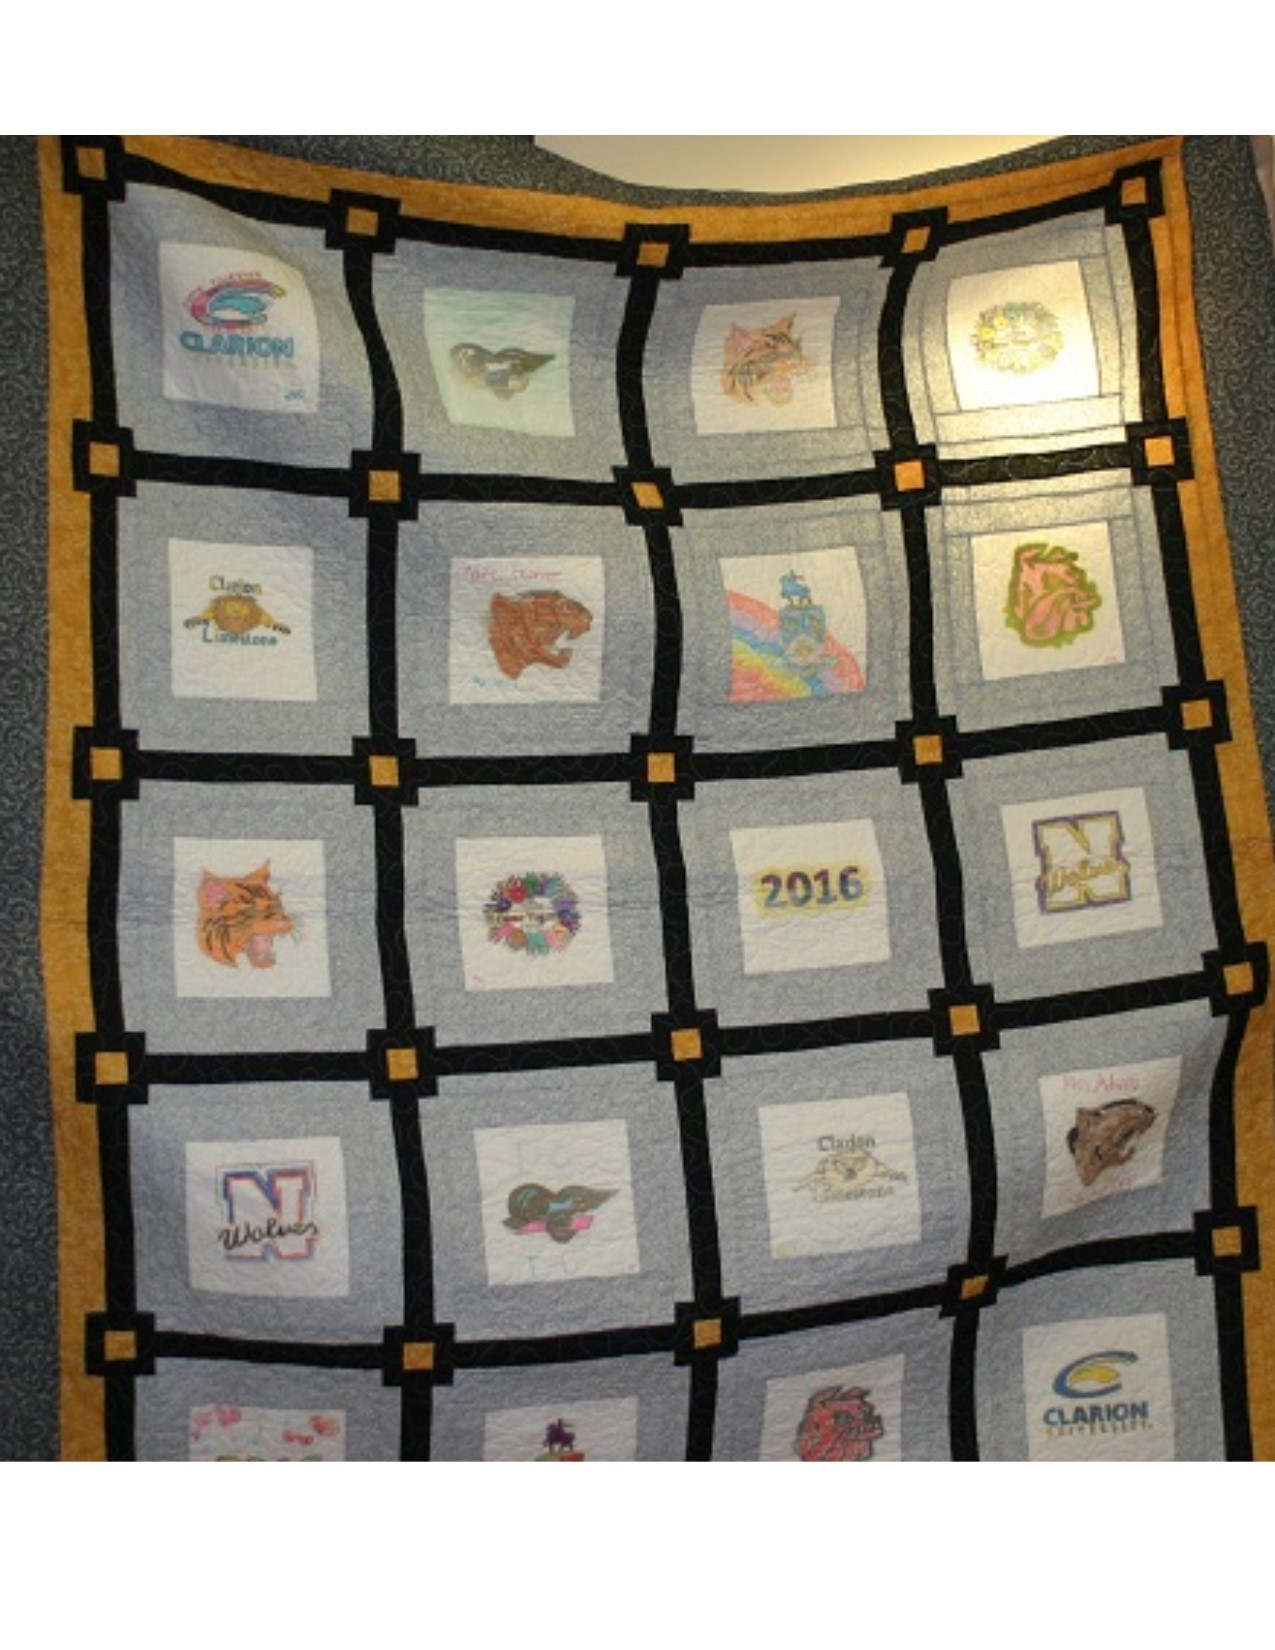 2015 Community Quilt Preview